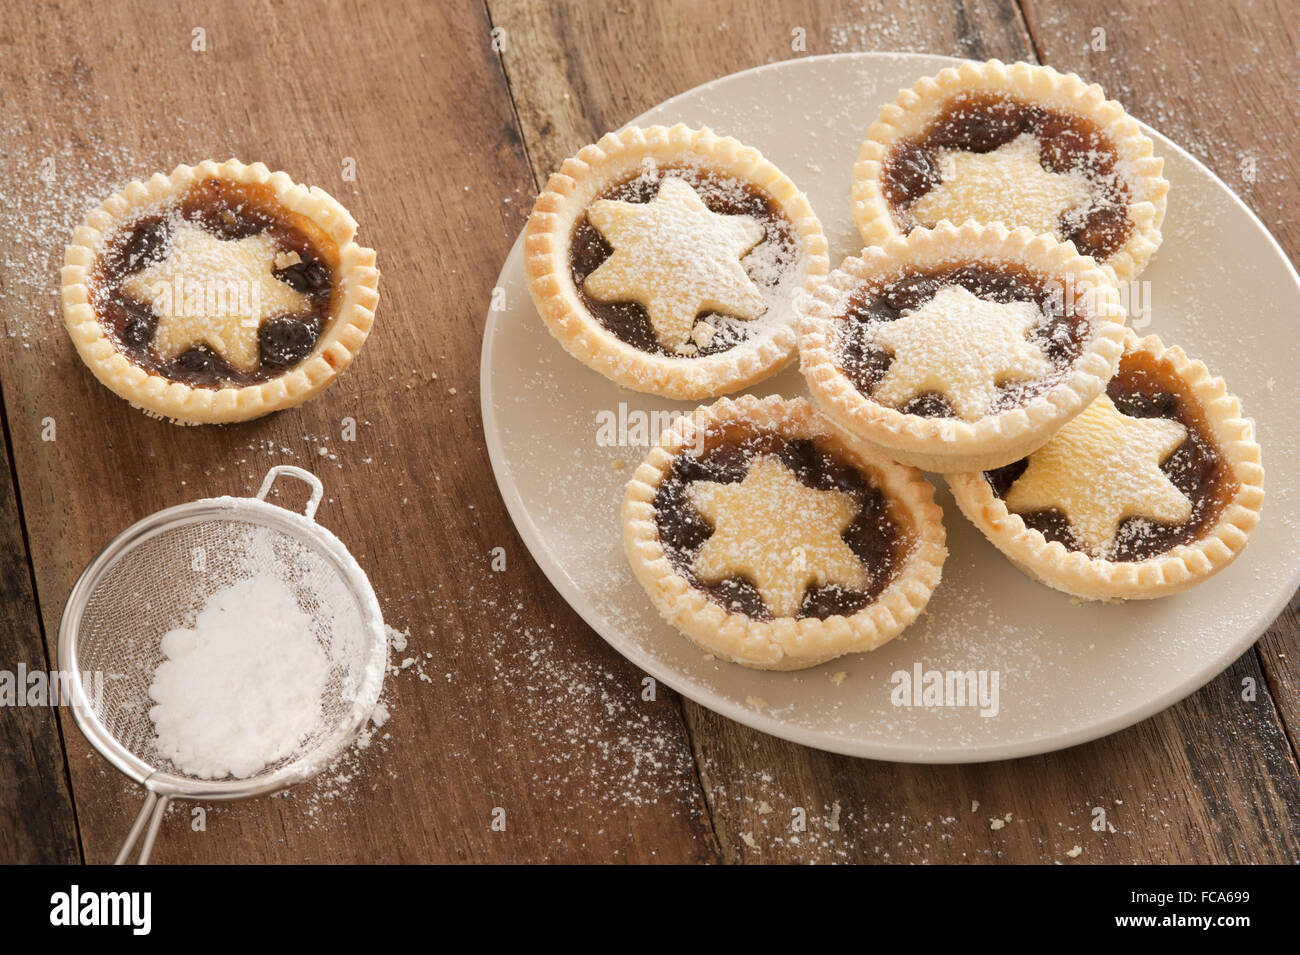 Delicious Christmas mince pies with stars - Stock Image